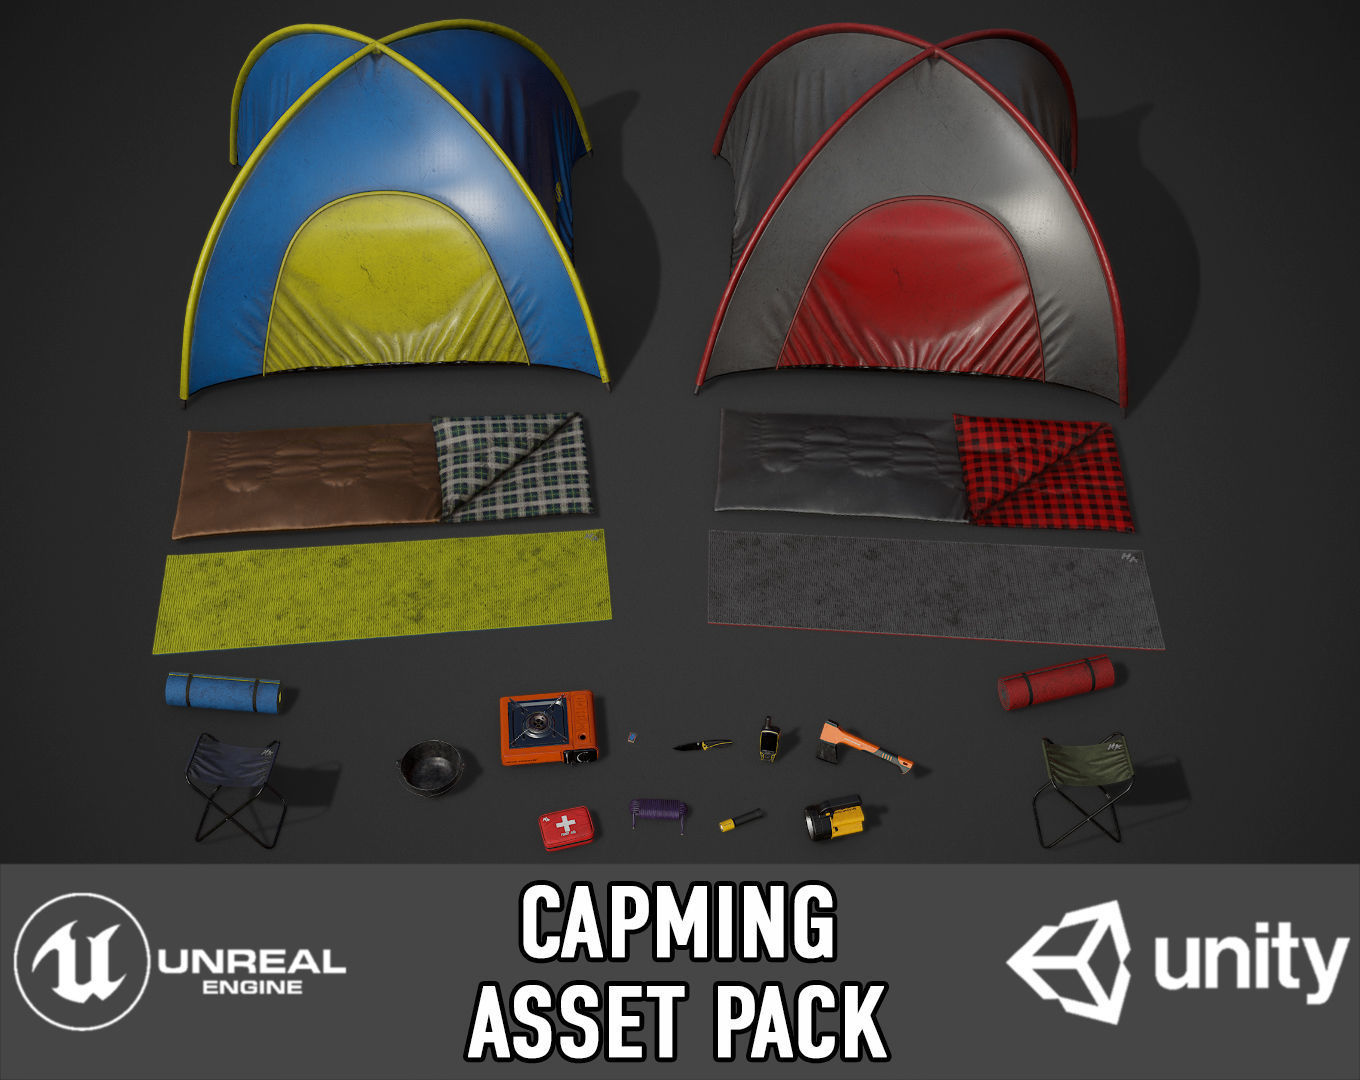 Camping Assets pack